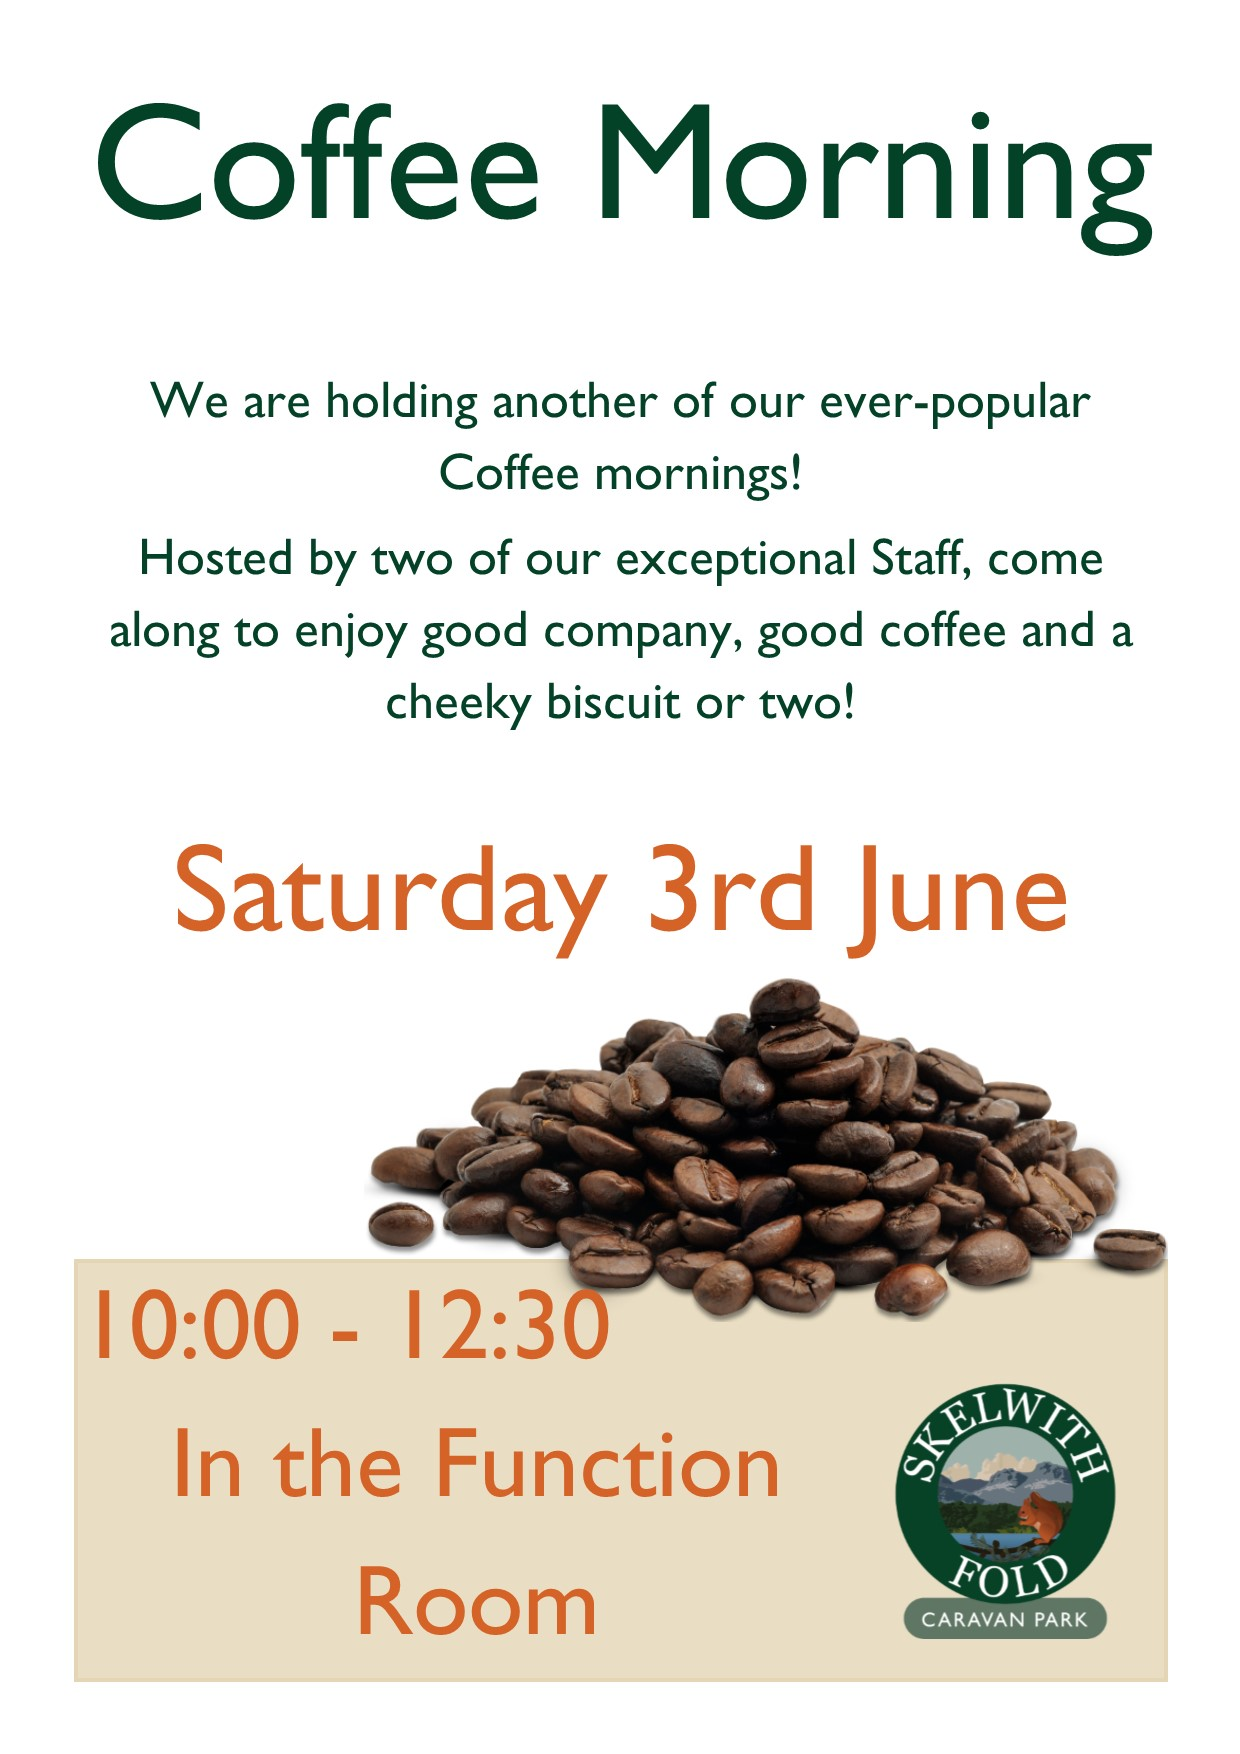 Coffee in the Function Room, 10:00 - 12:30 on Saturday 3rd June